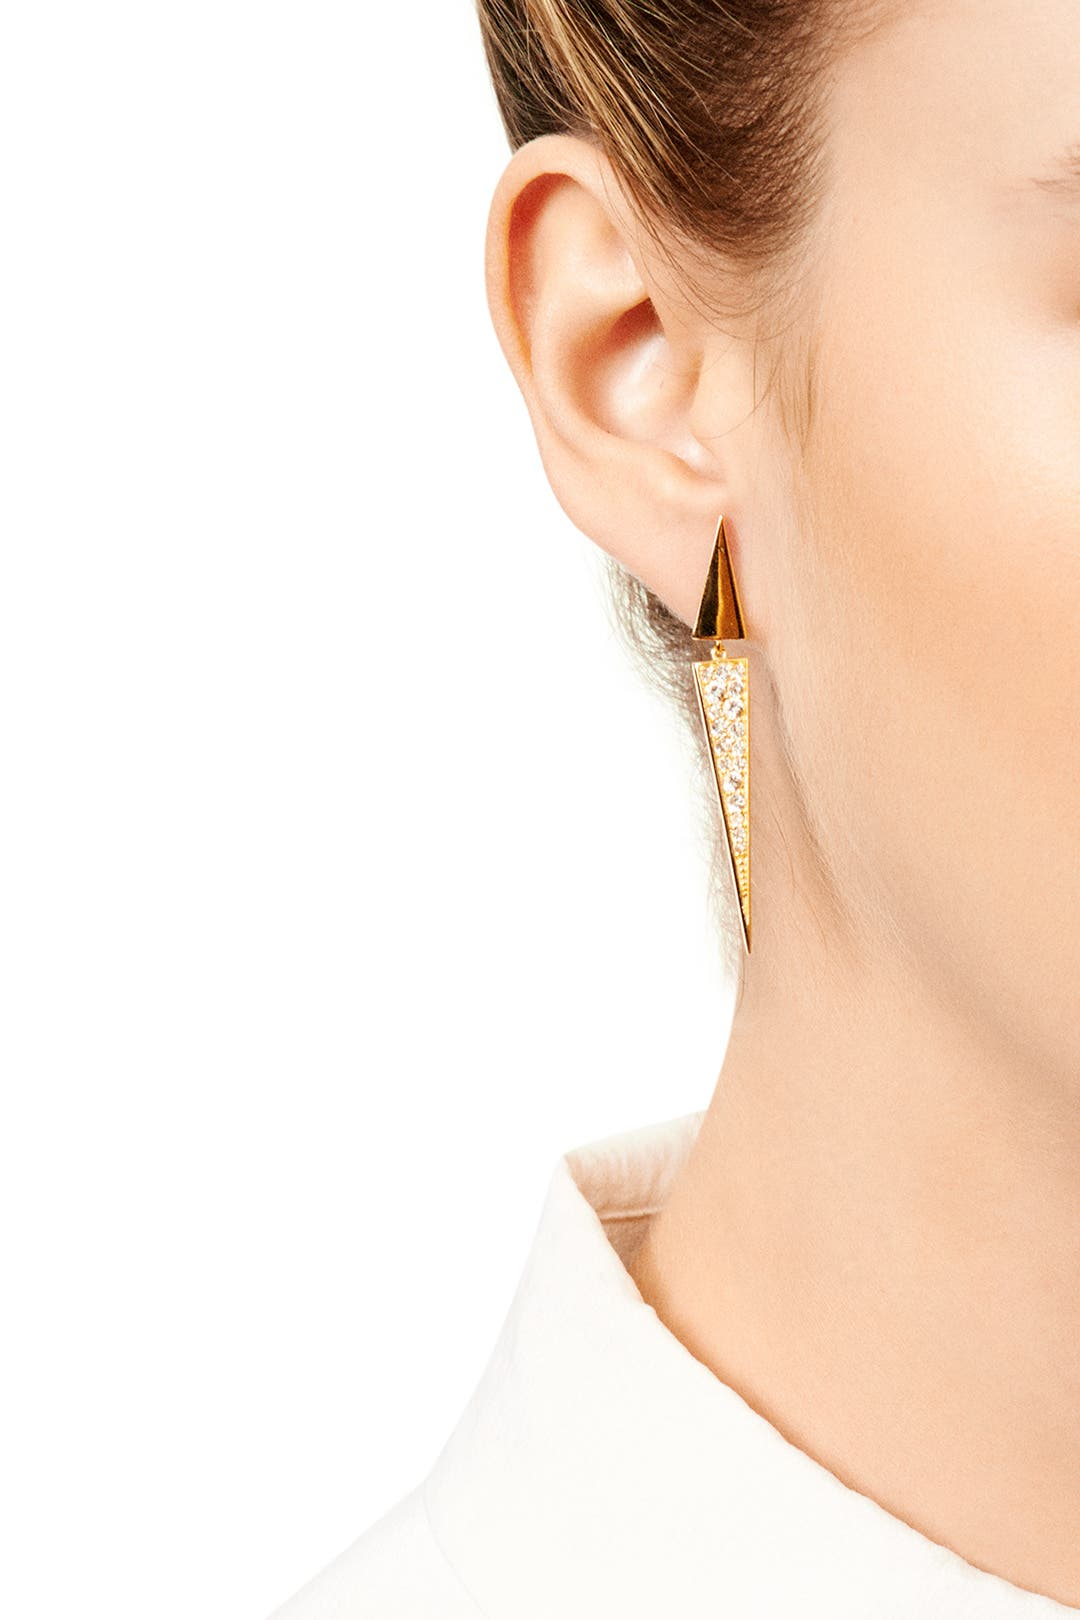 Itten Earrings By Elizabeth And James Accessories For 35 The Runway